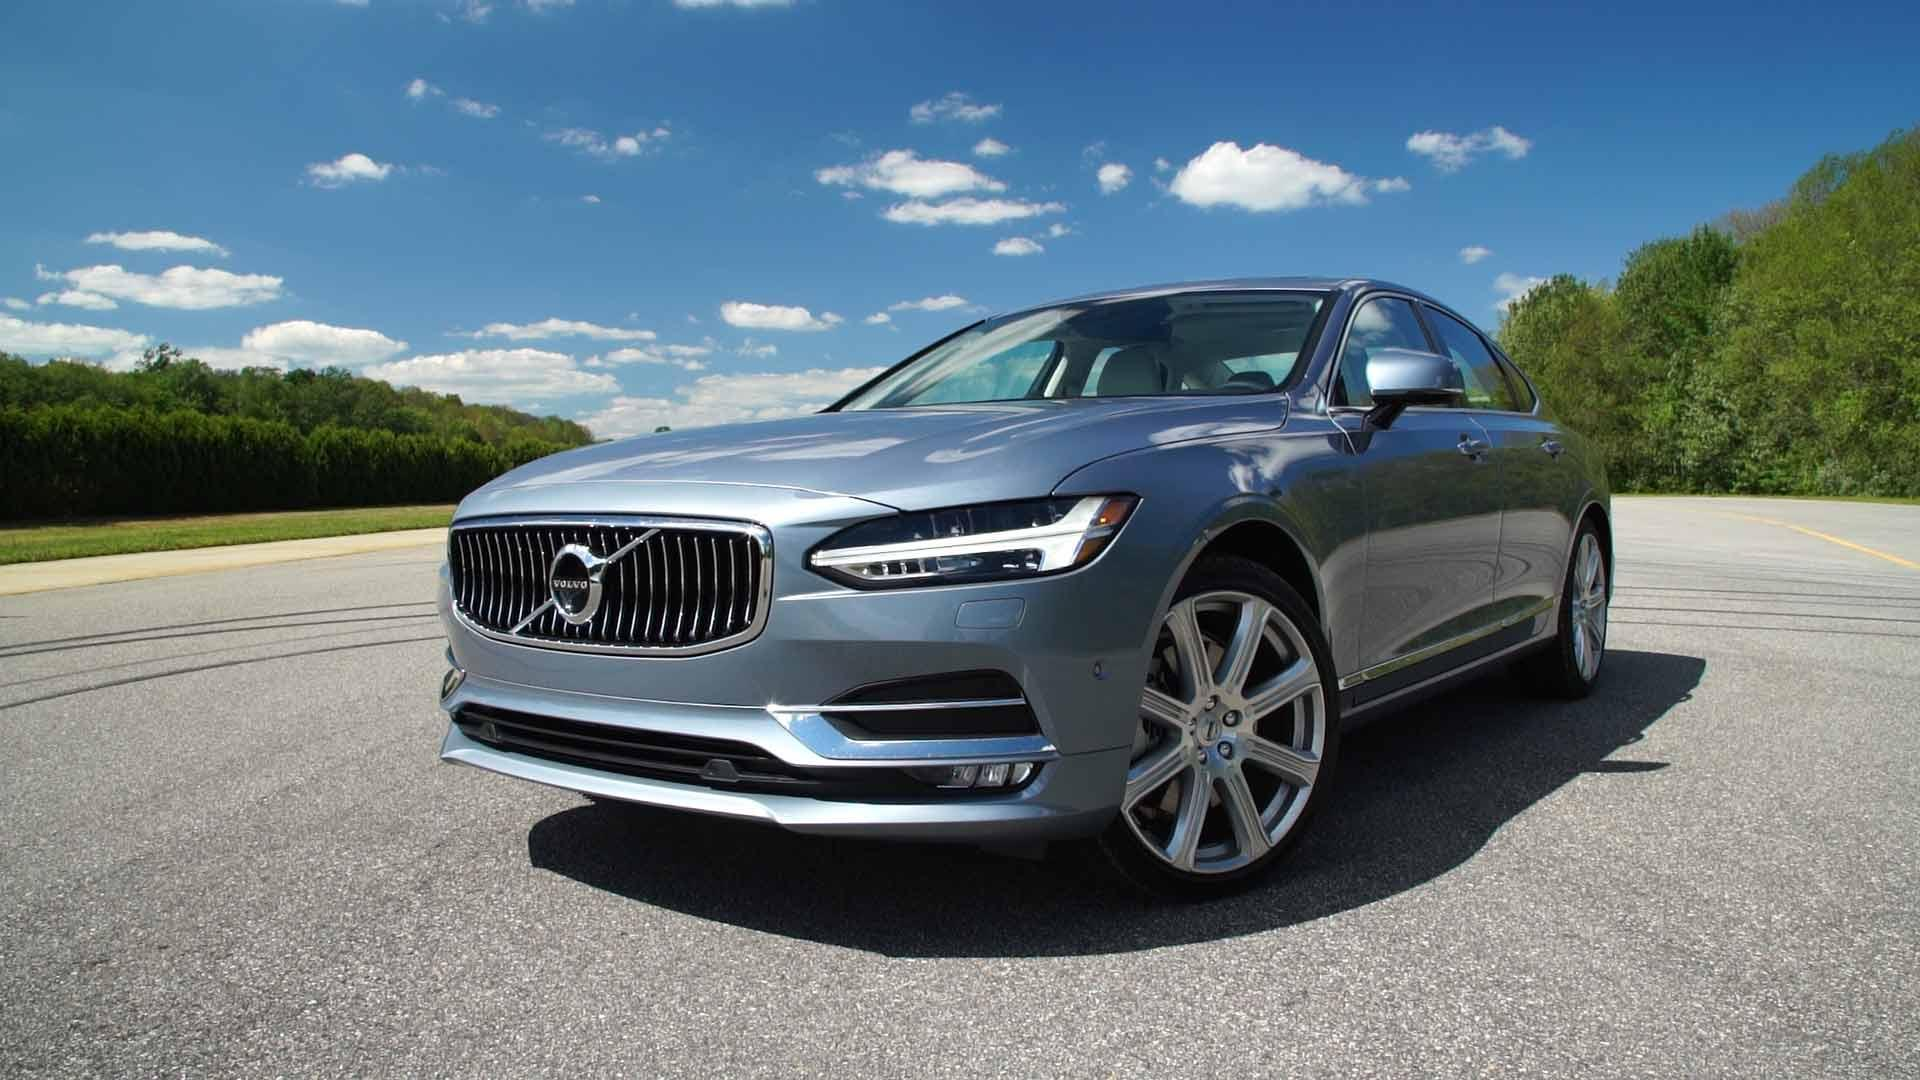 2017 volvo s90 review a diamond still in the rough consumer reports. Black Bedroom Furniture Sets. Home Design Ideas